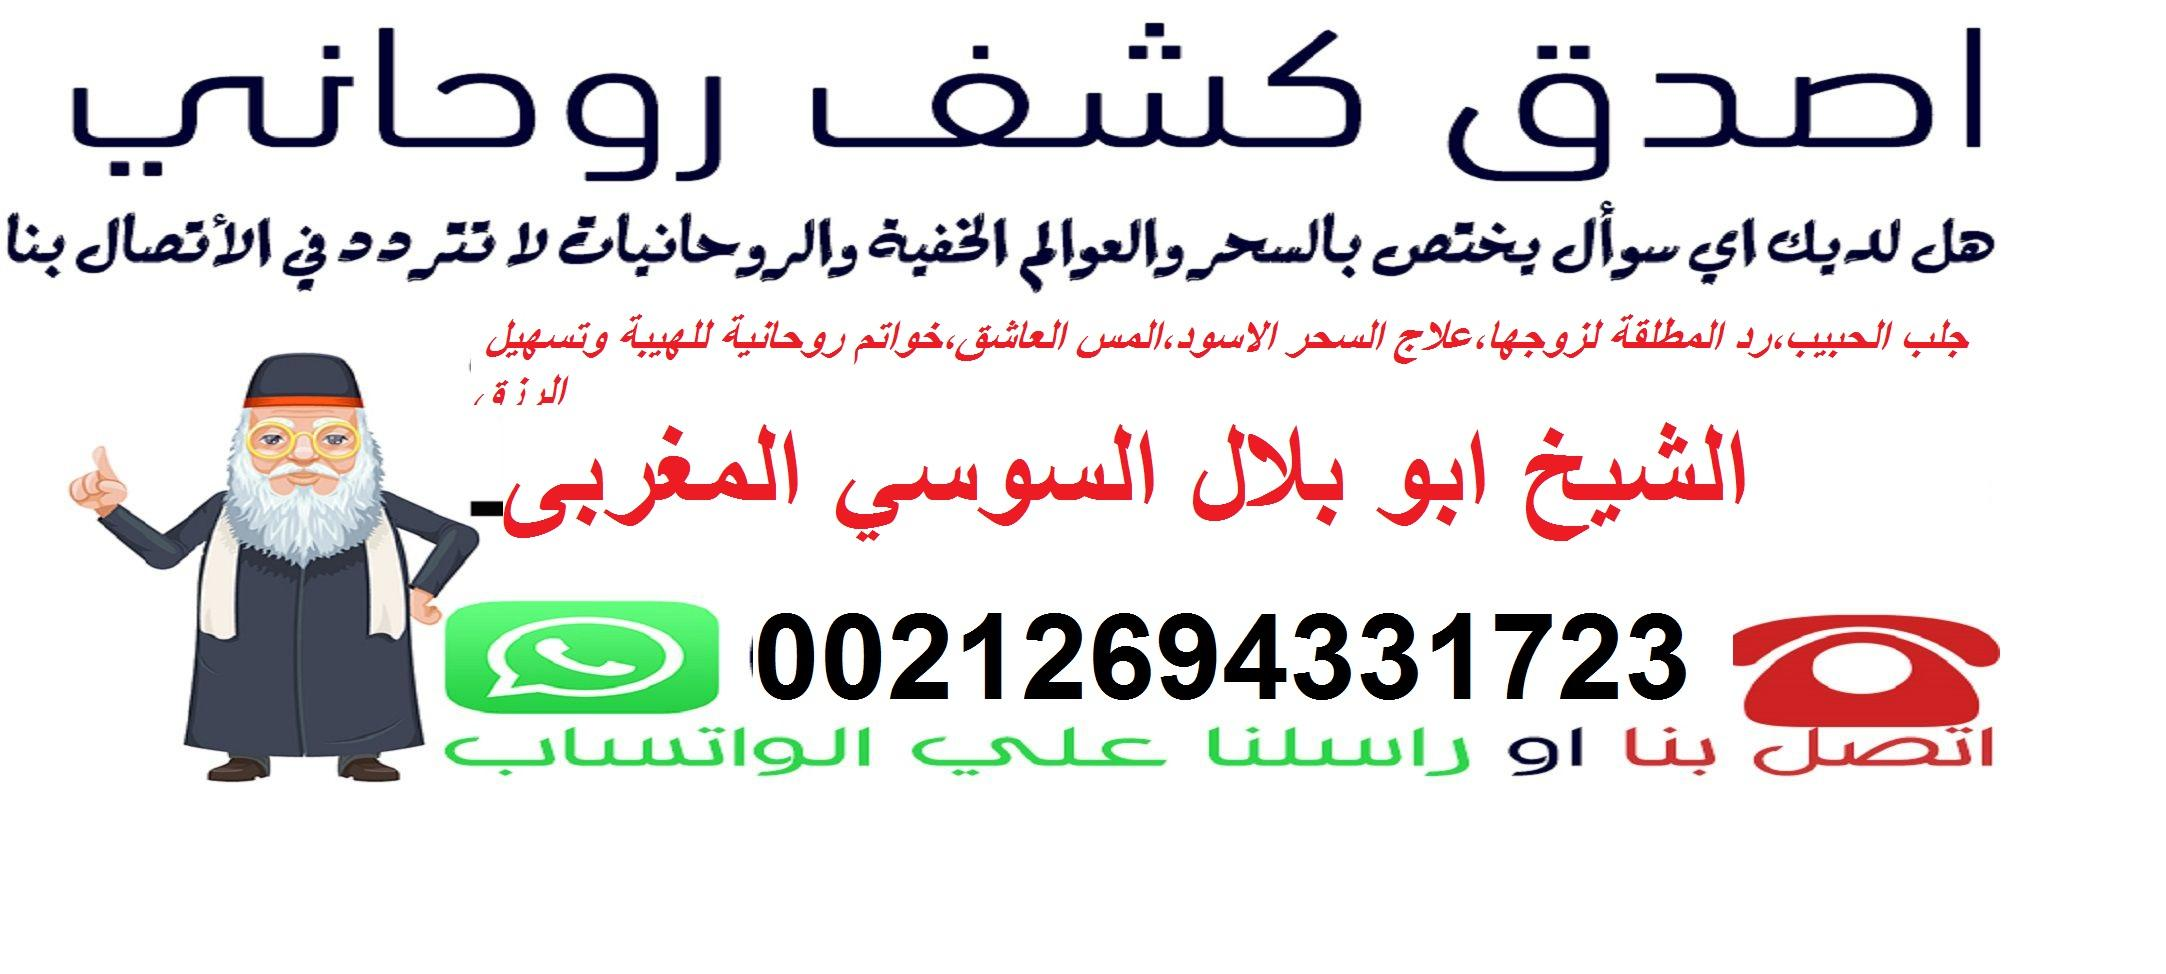 <!-- google_ad_section_start -->اشهر مغربى الحبيب00212694331723اشهر مغربى الحبيب00212694331723اشهر مغربى الحبيب00212694331723اشهر مغربى الحبيب00212694331723<br /><div style=